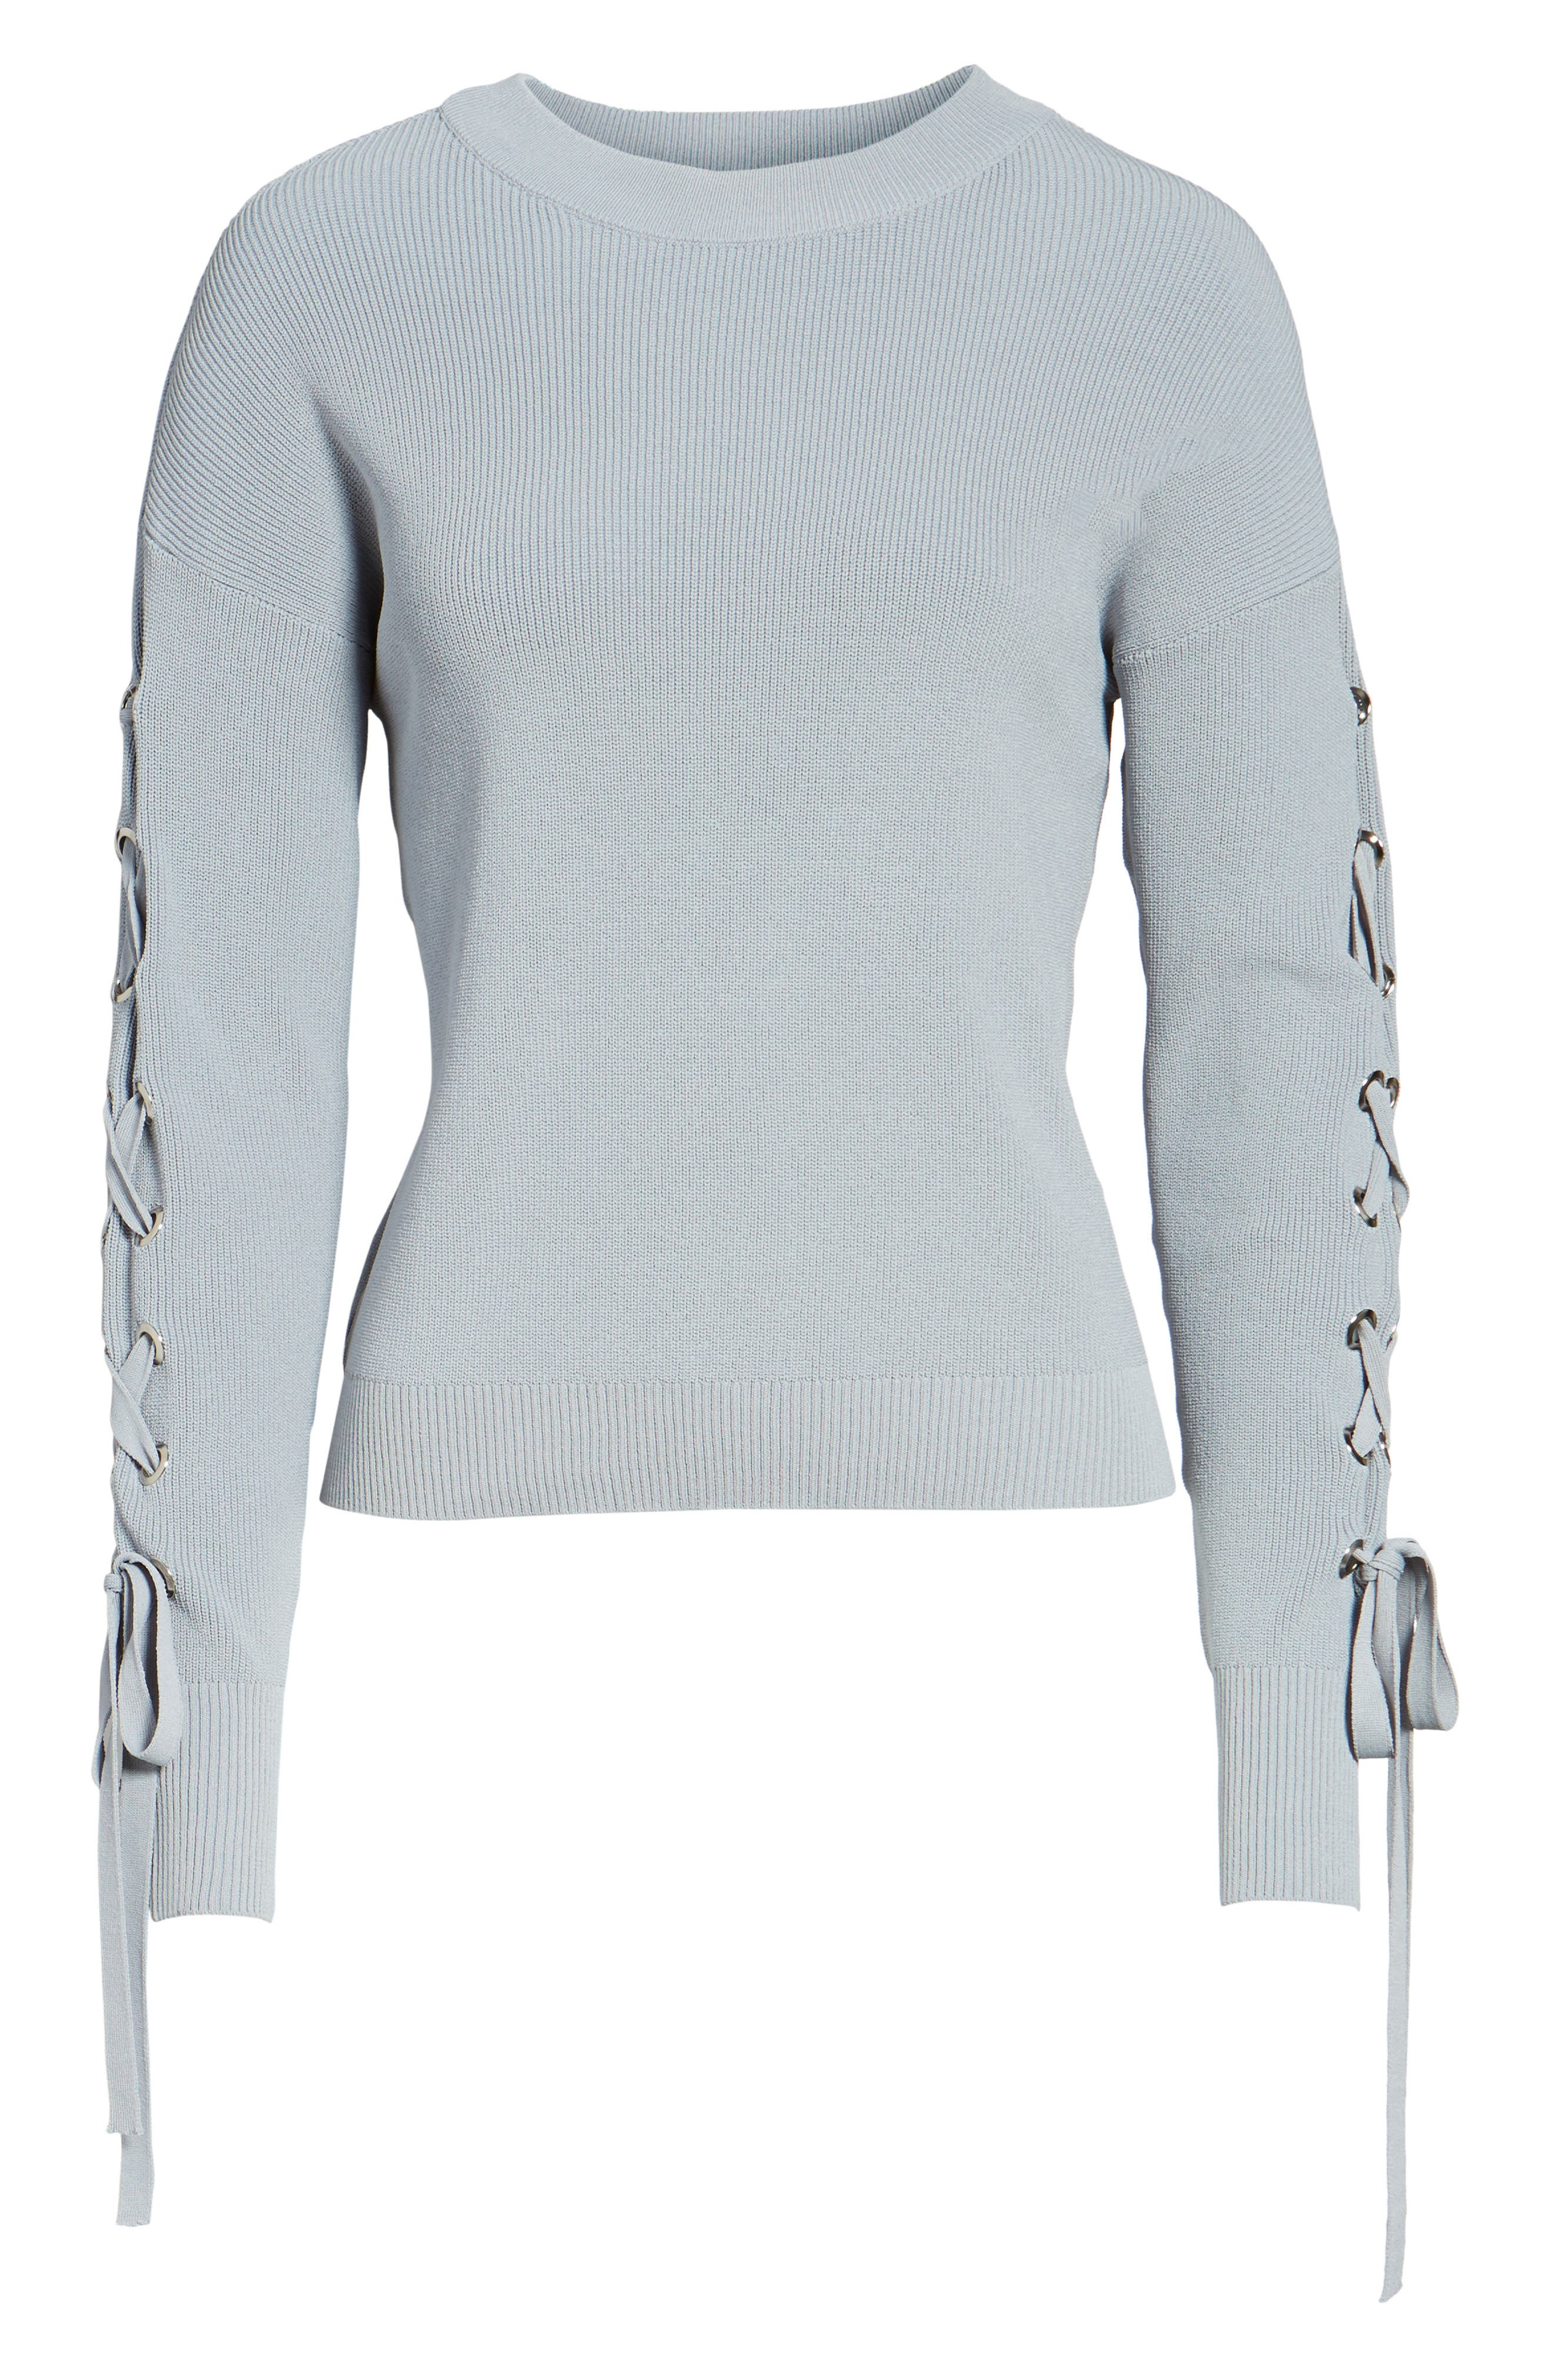 Lace-Up Sleeve Sweater,                             Alternate thumbnail 6, color,                             400